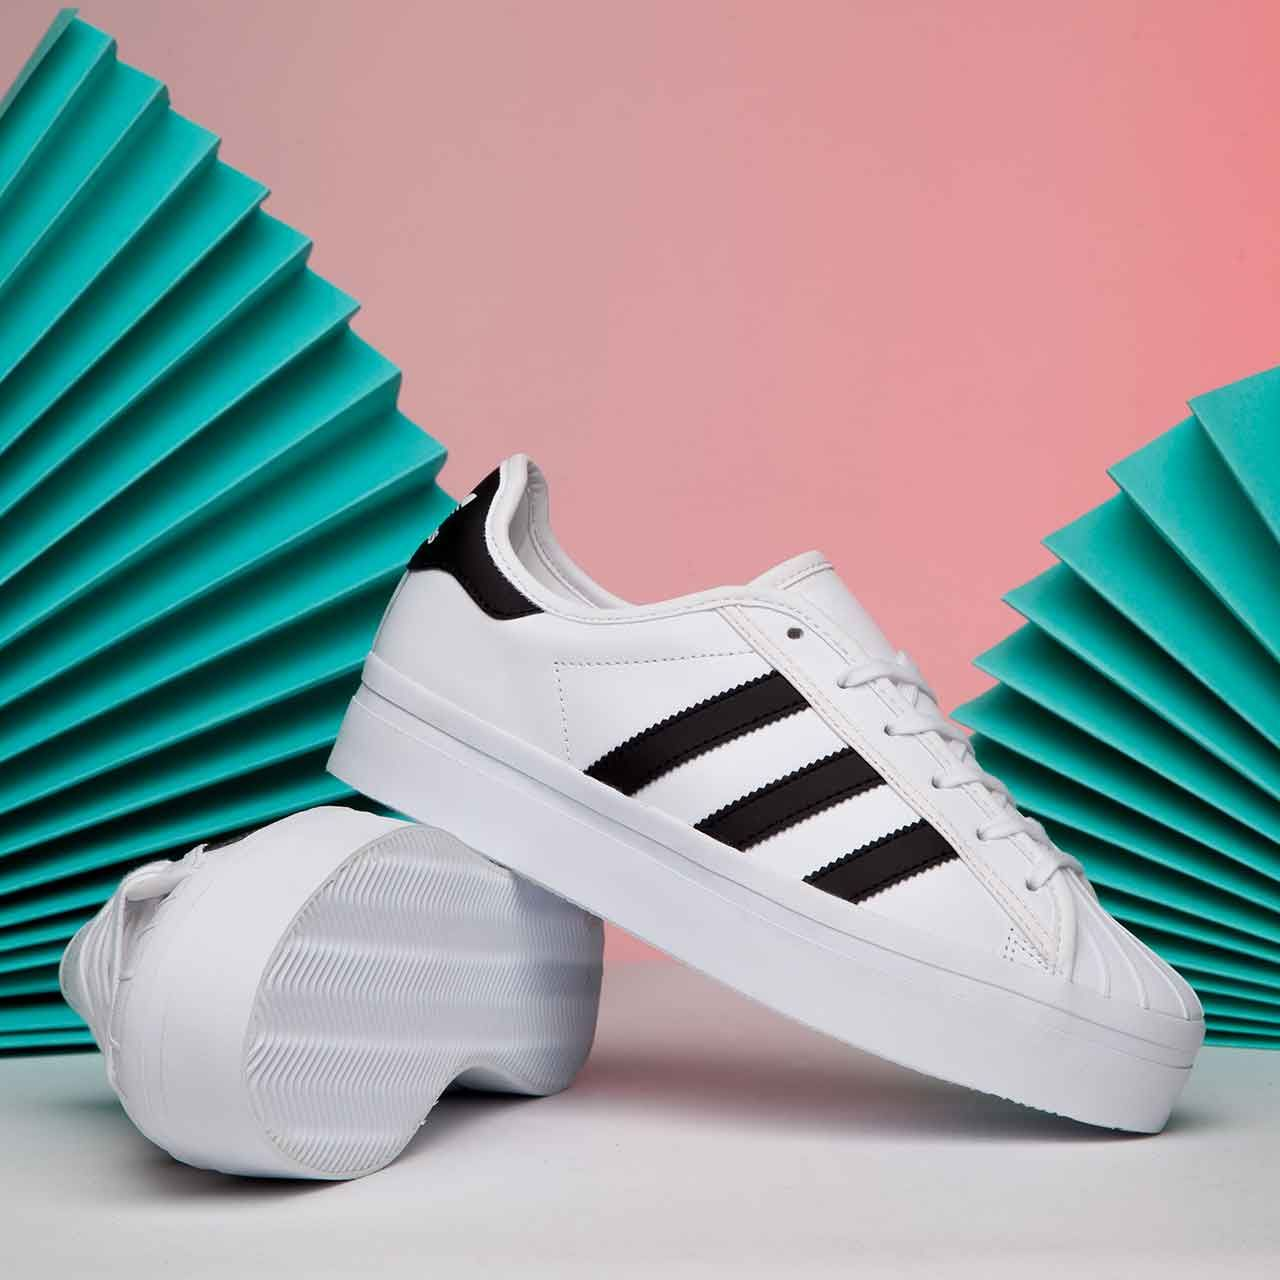 For the girls! The adidas Originals Womens Superstar Rize